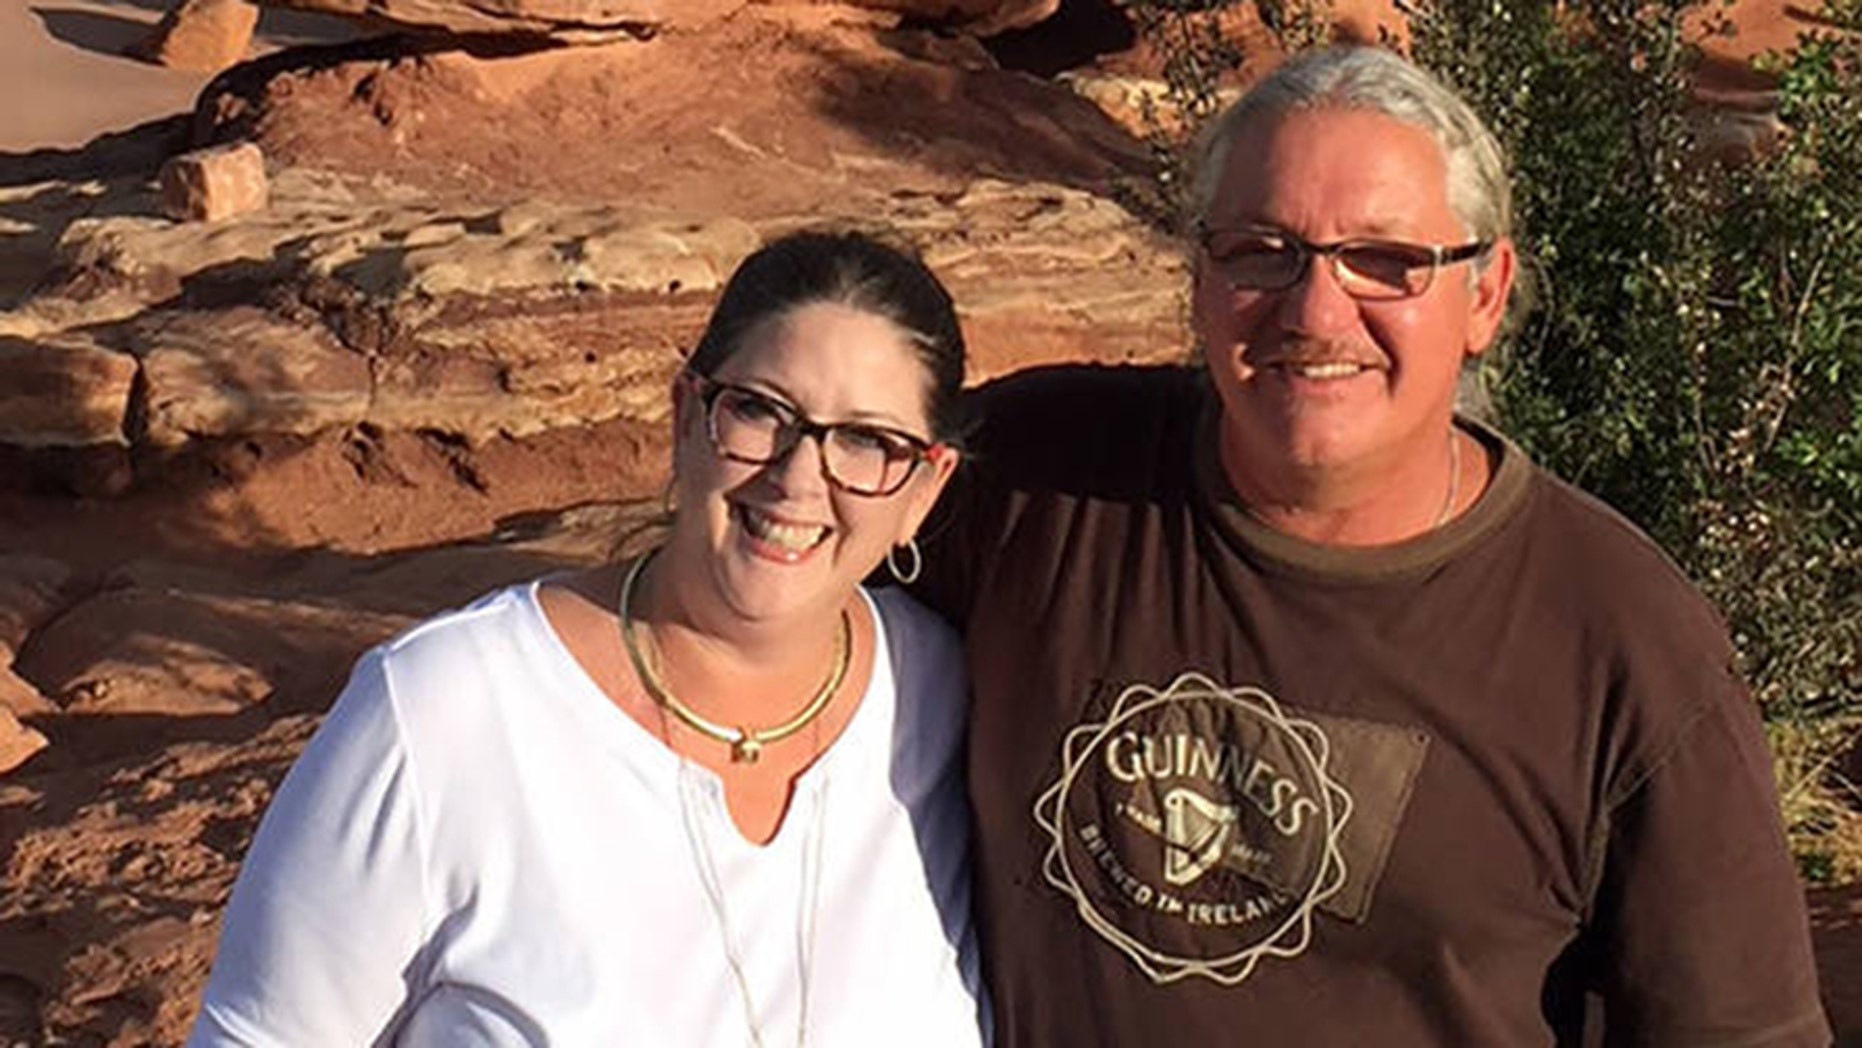 Brenda Reichel, left, said her boyfriend, Sean Shields, right, suffered a massive heart attack Saturday after residents were falsely told a ballistic missile was headed toward the state.